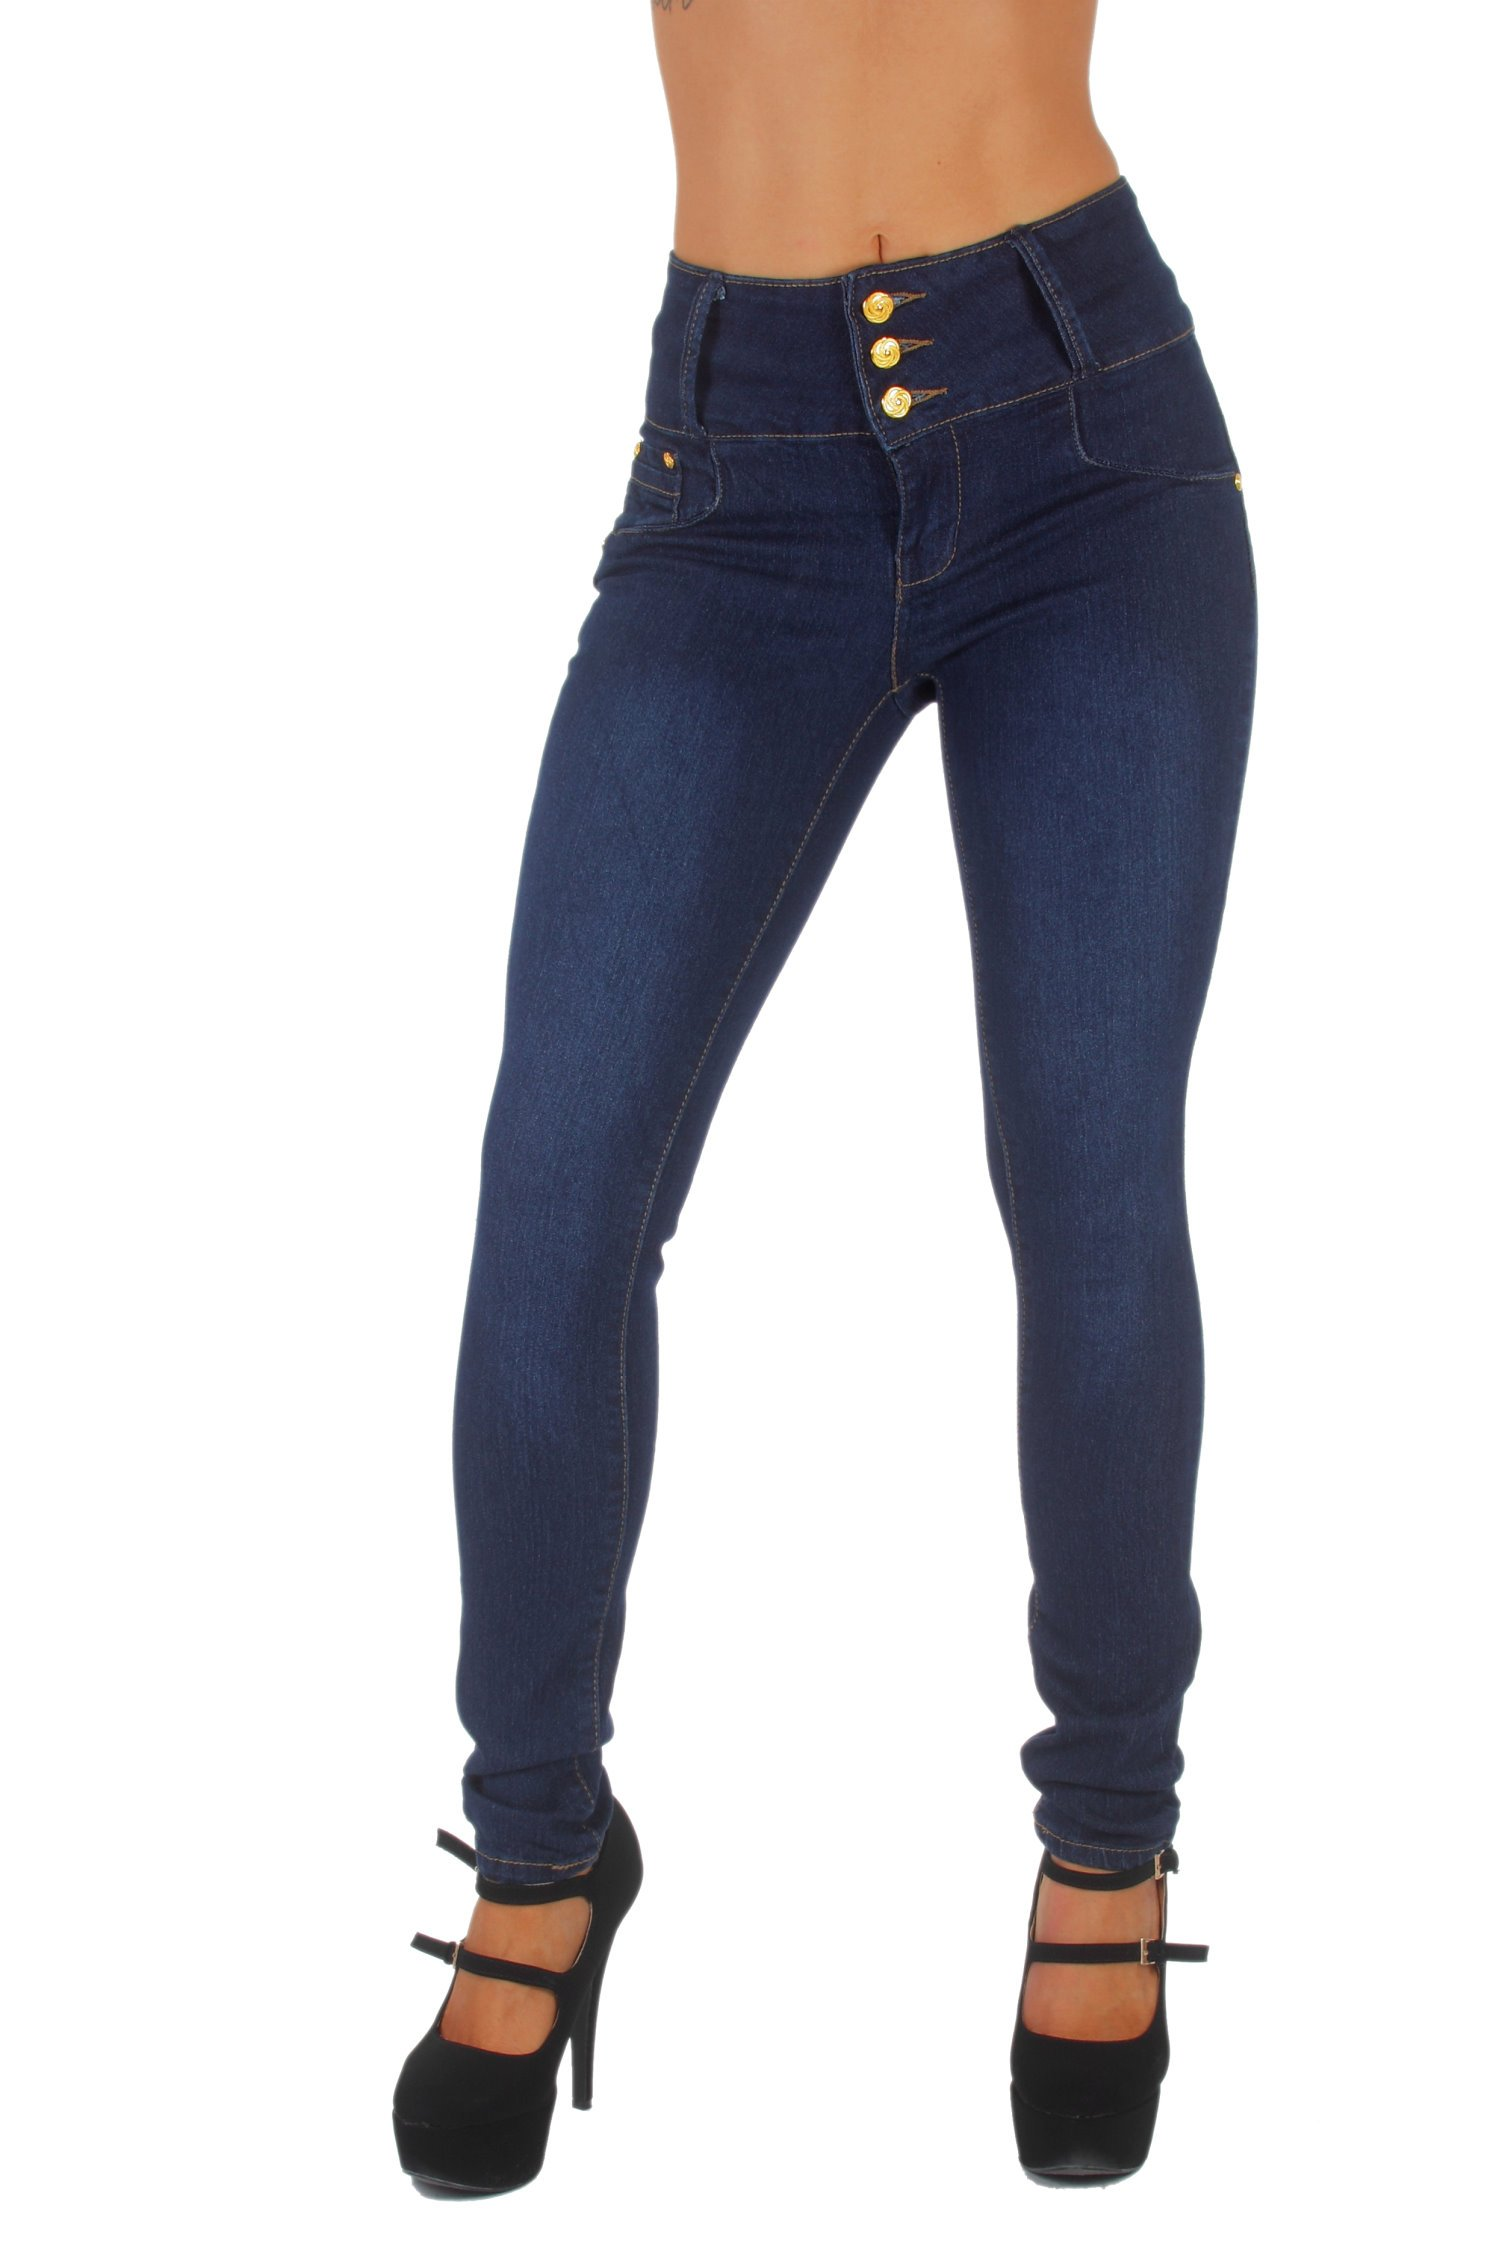 Style G354- Colombian Design, High Waist, Butt Lift, Levanta Cola, Skinny Jeans in Dark Blue (0)